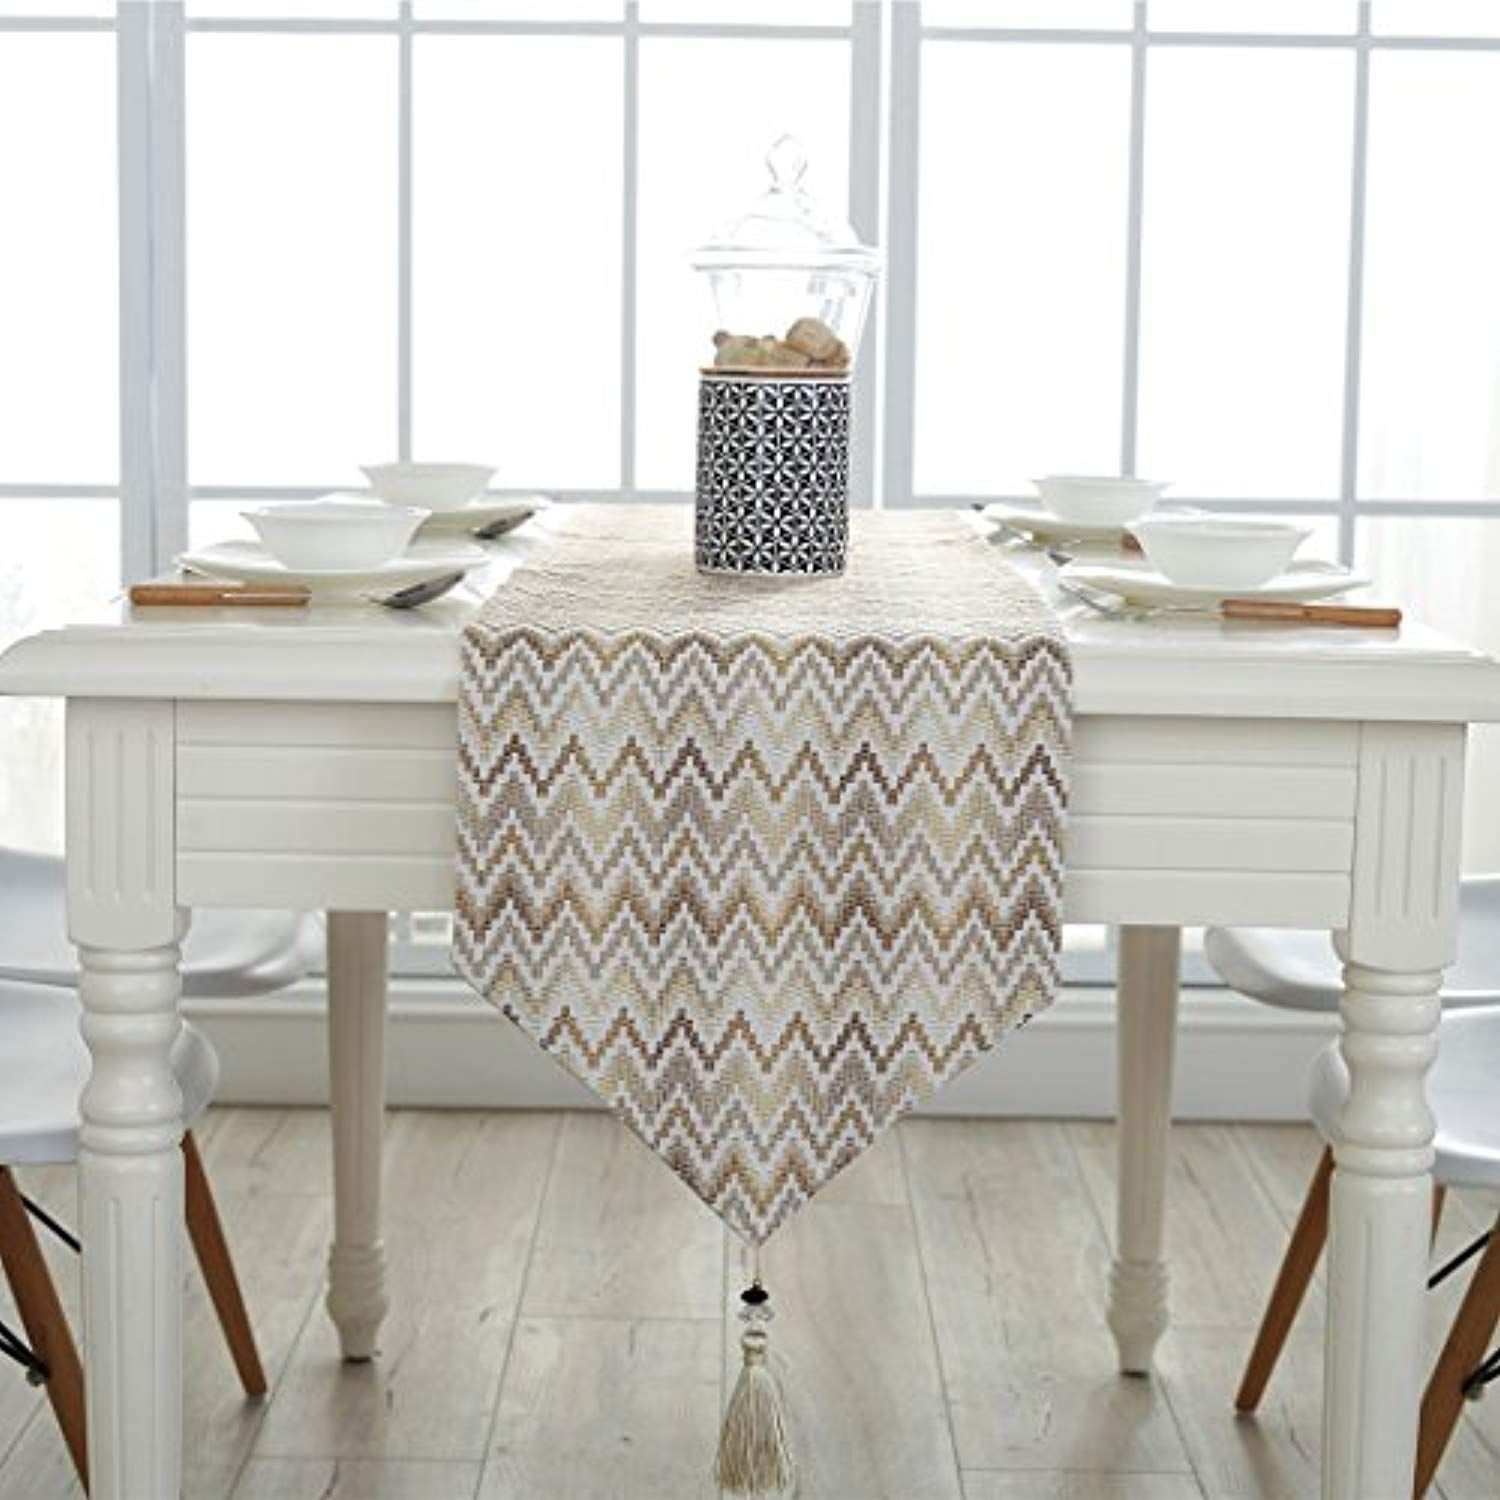 Ethomes geometric pattern cotton linen fabric table runner home outdoor kitchen dining room decor 13 x 63 inches33 x 160cm check out this great